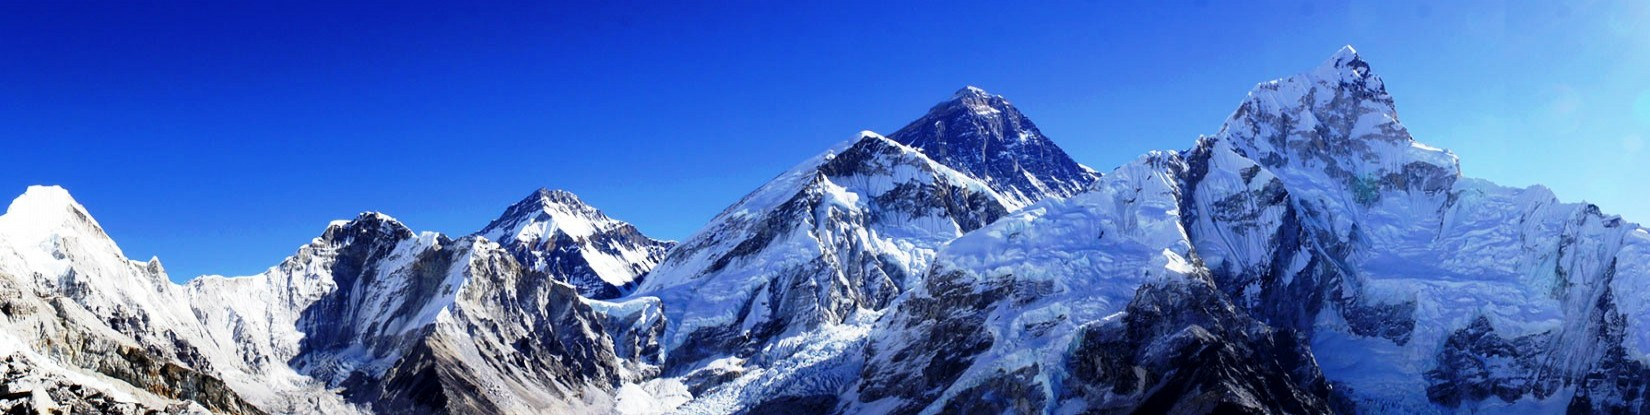 Everest Range from Kala Patthar